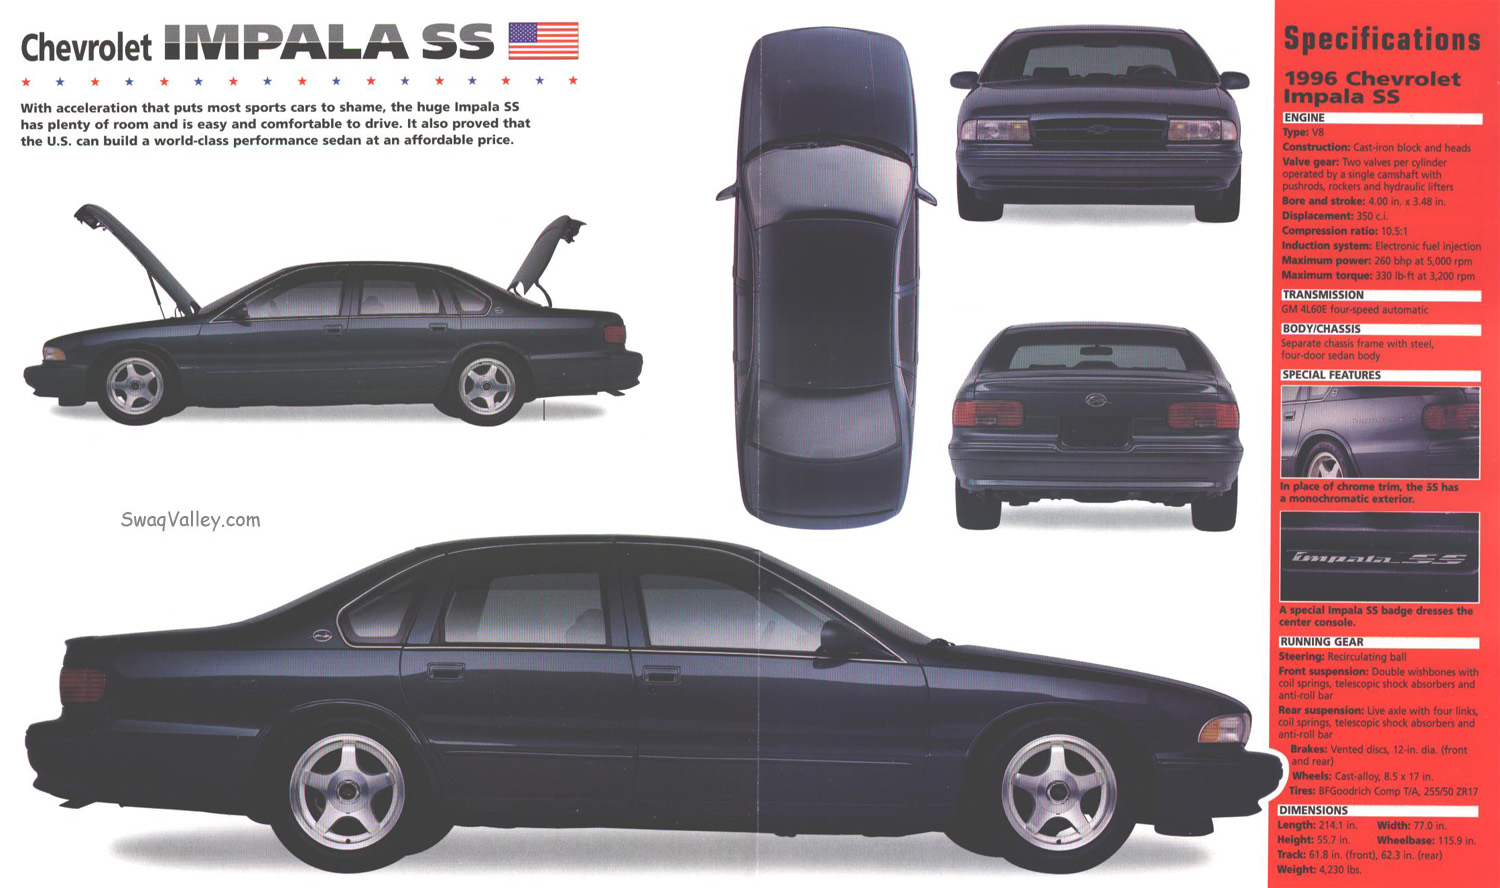 Impala 1996 chevy impala ss : Buyers Guide 1994-1996 Impala SS - Random Car Showcase - Cheers ...